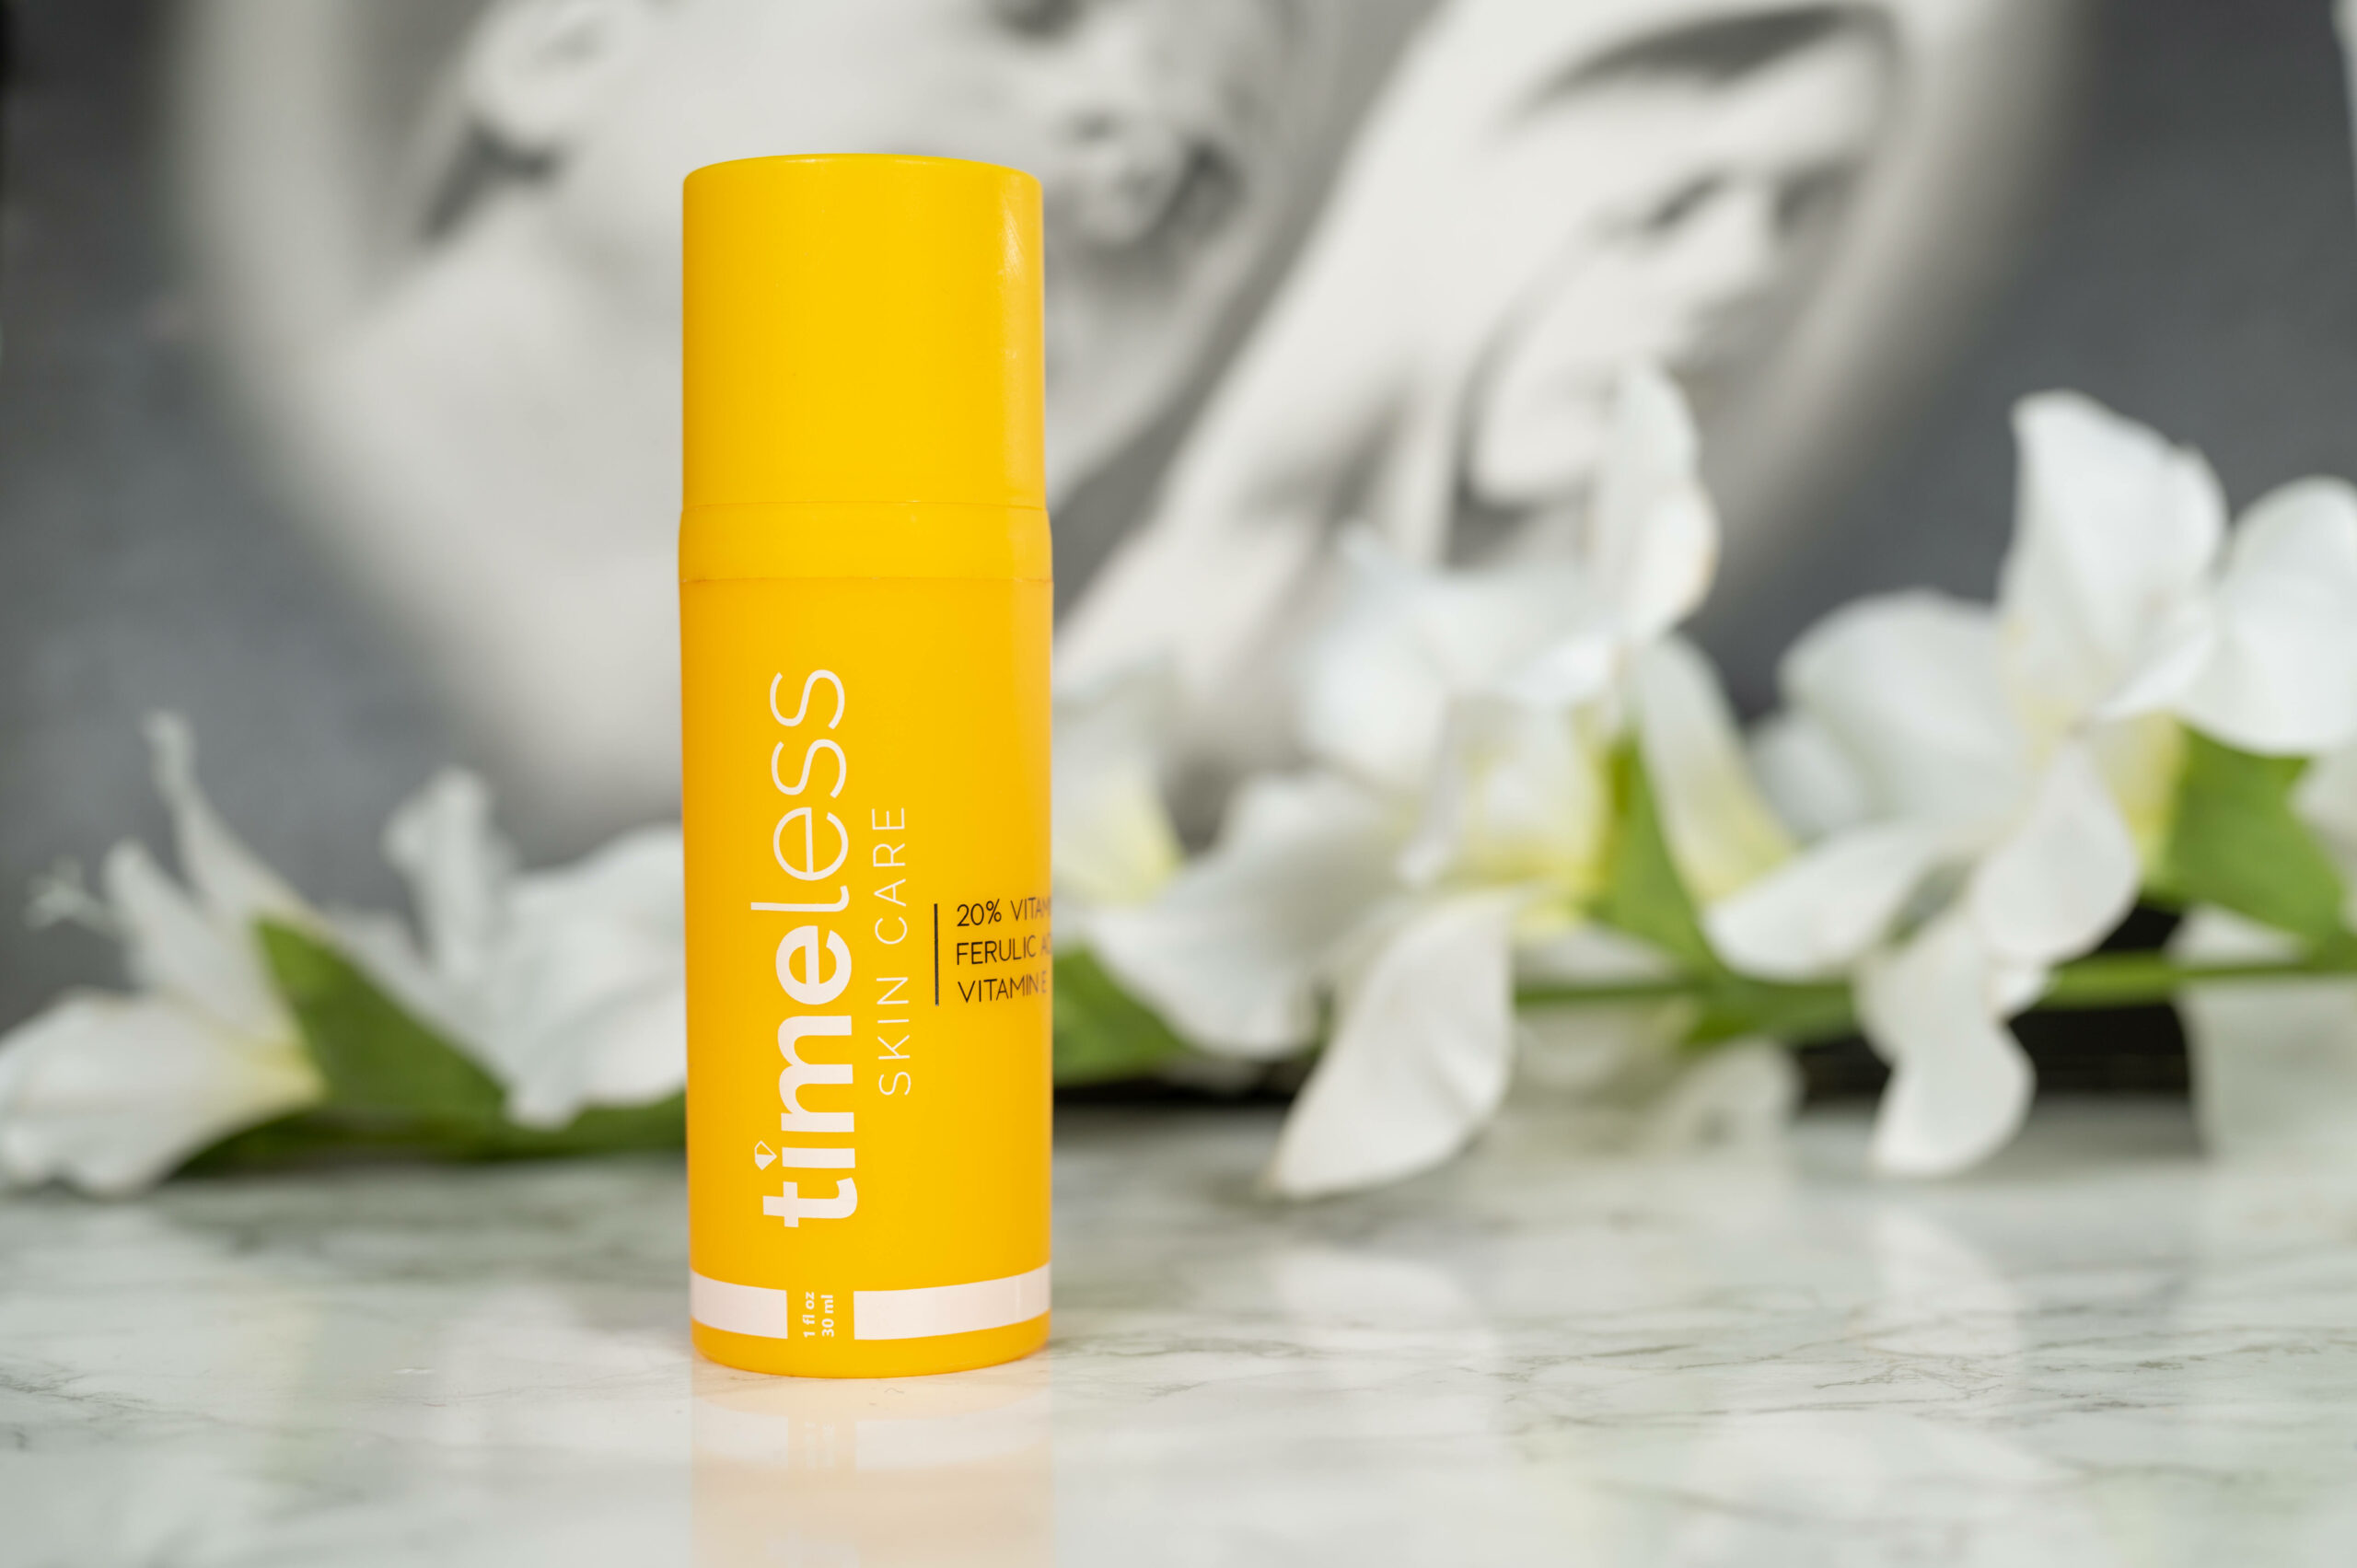 The Timeless 20% Vitamin C + E Ferulic Acid Serum comes highly recommended